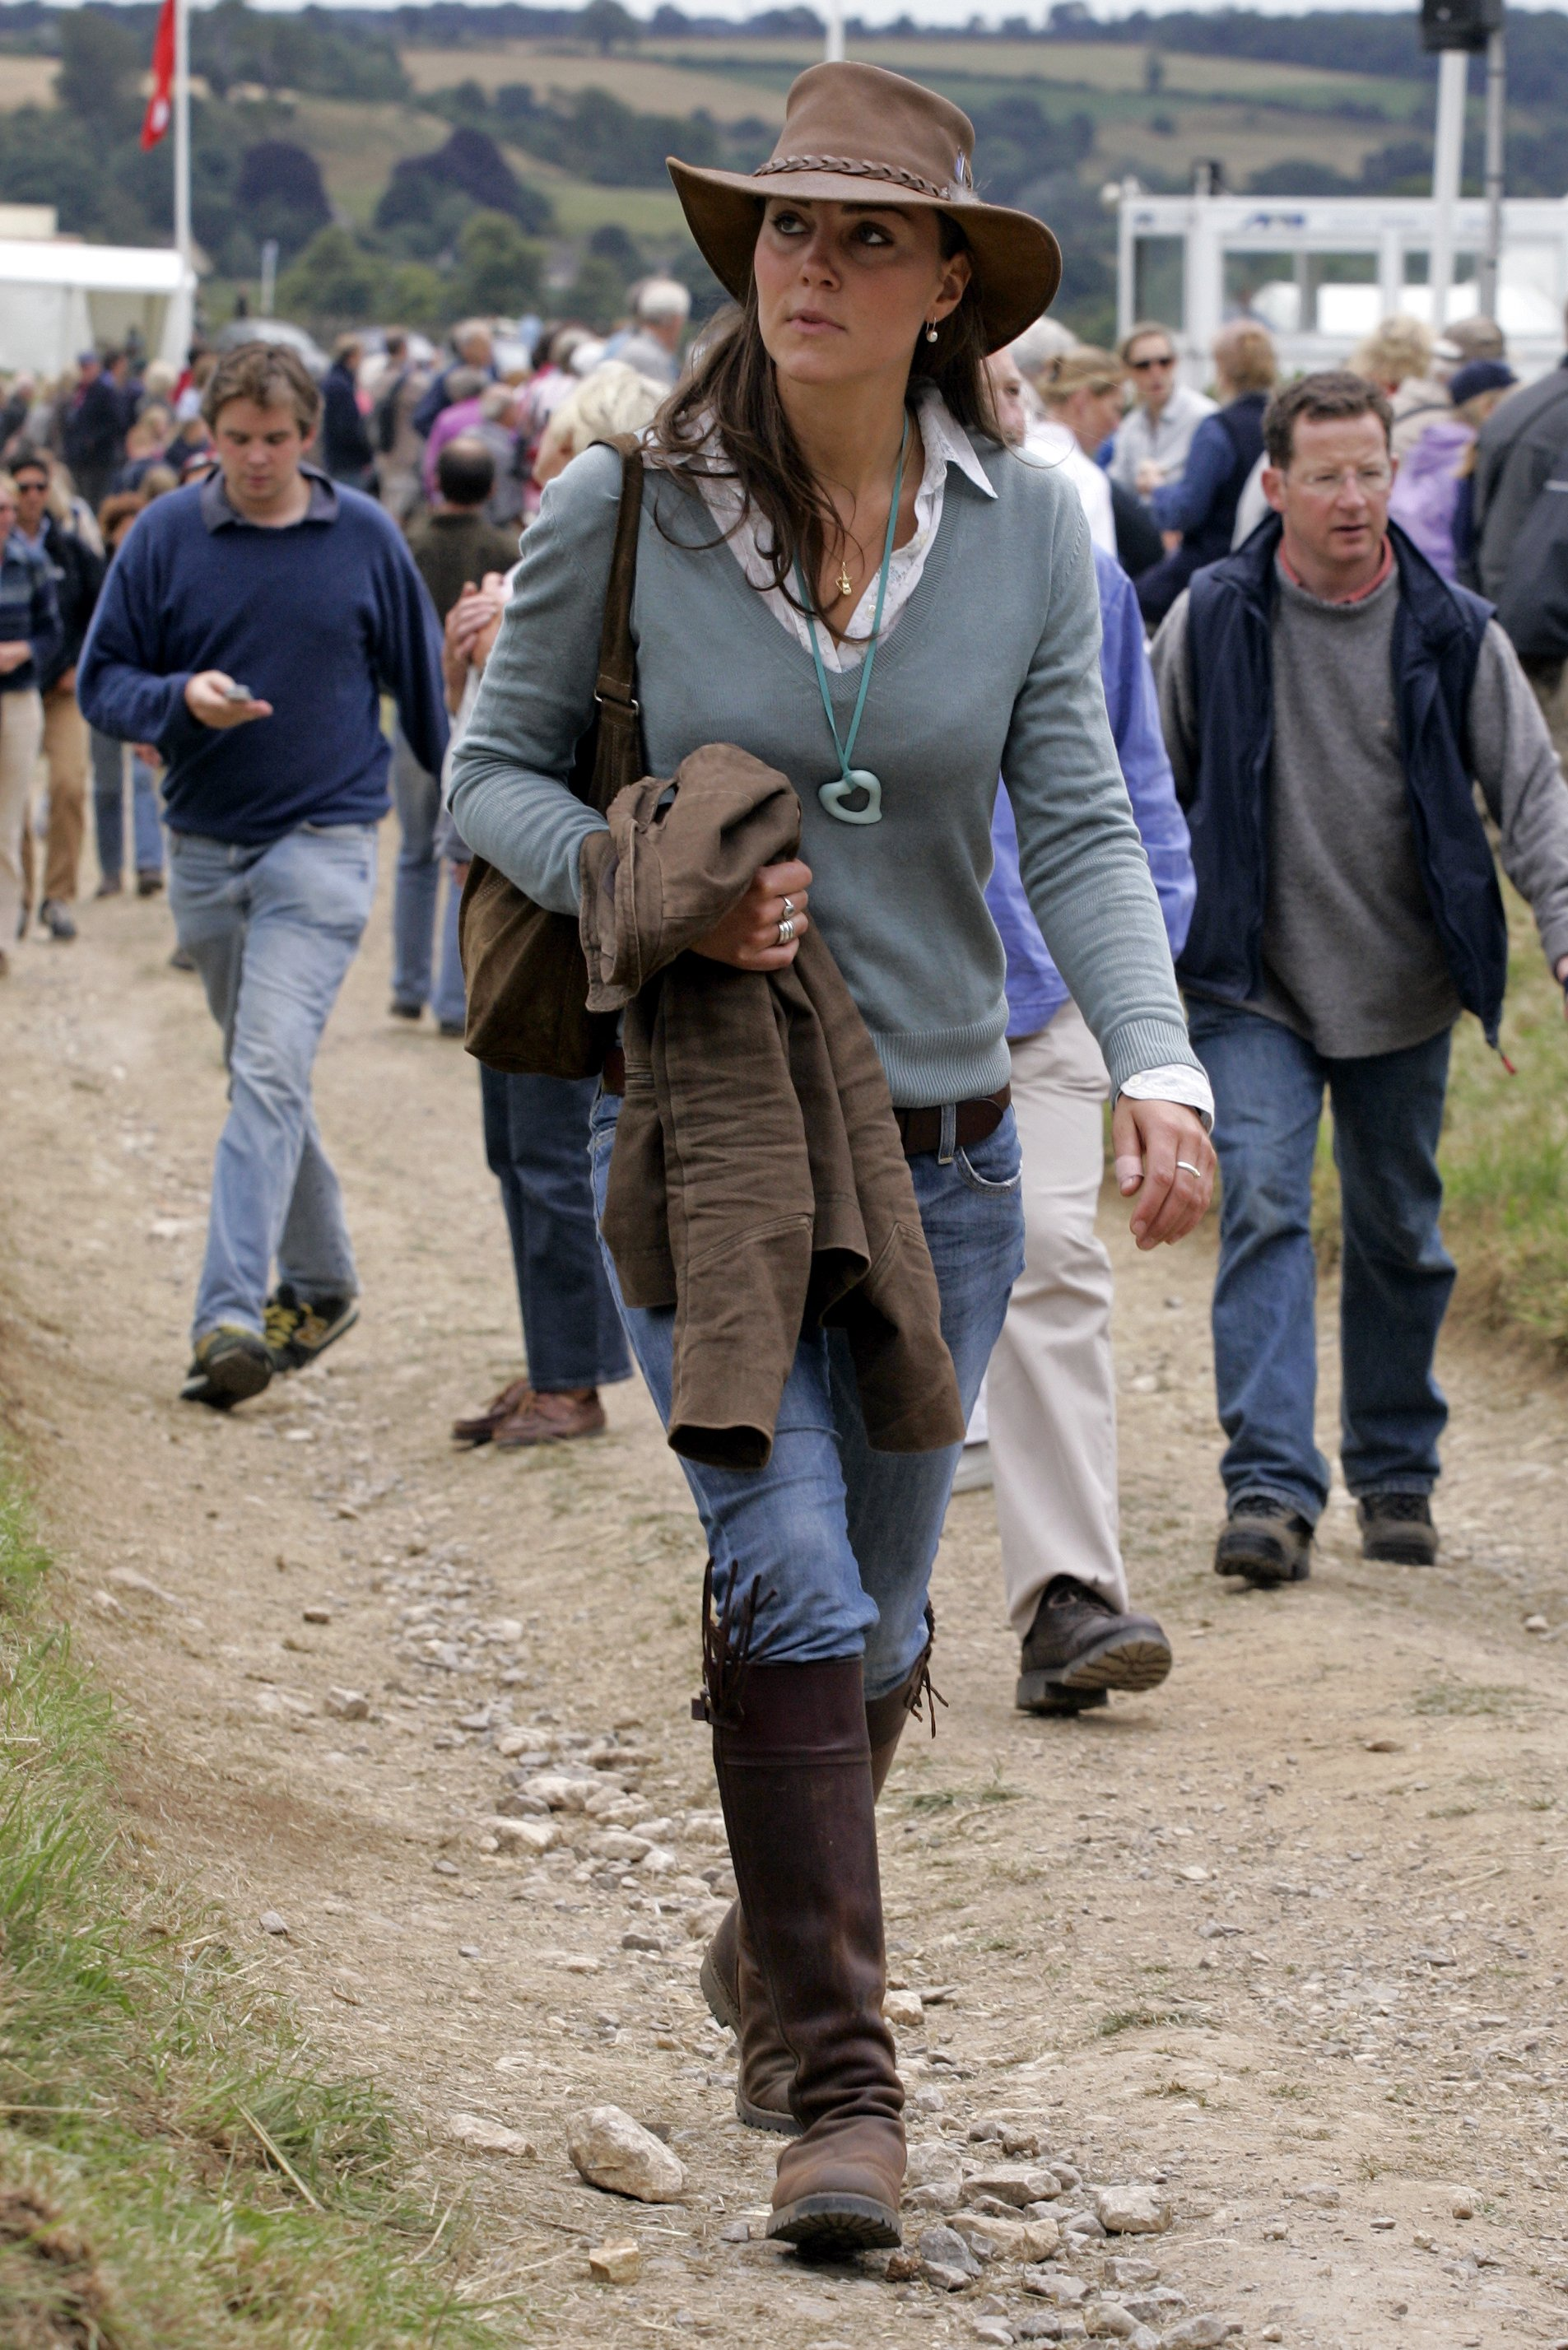 In 2005, Kate Middleton wore her trusty boots to the Festival of British Eventing at Gatcombe Park, in Stroud, England. | Photo: Getty Images